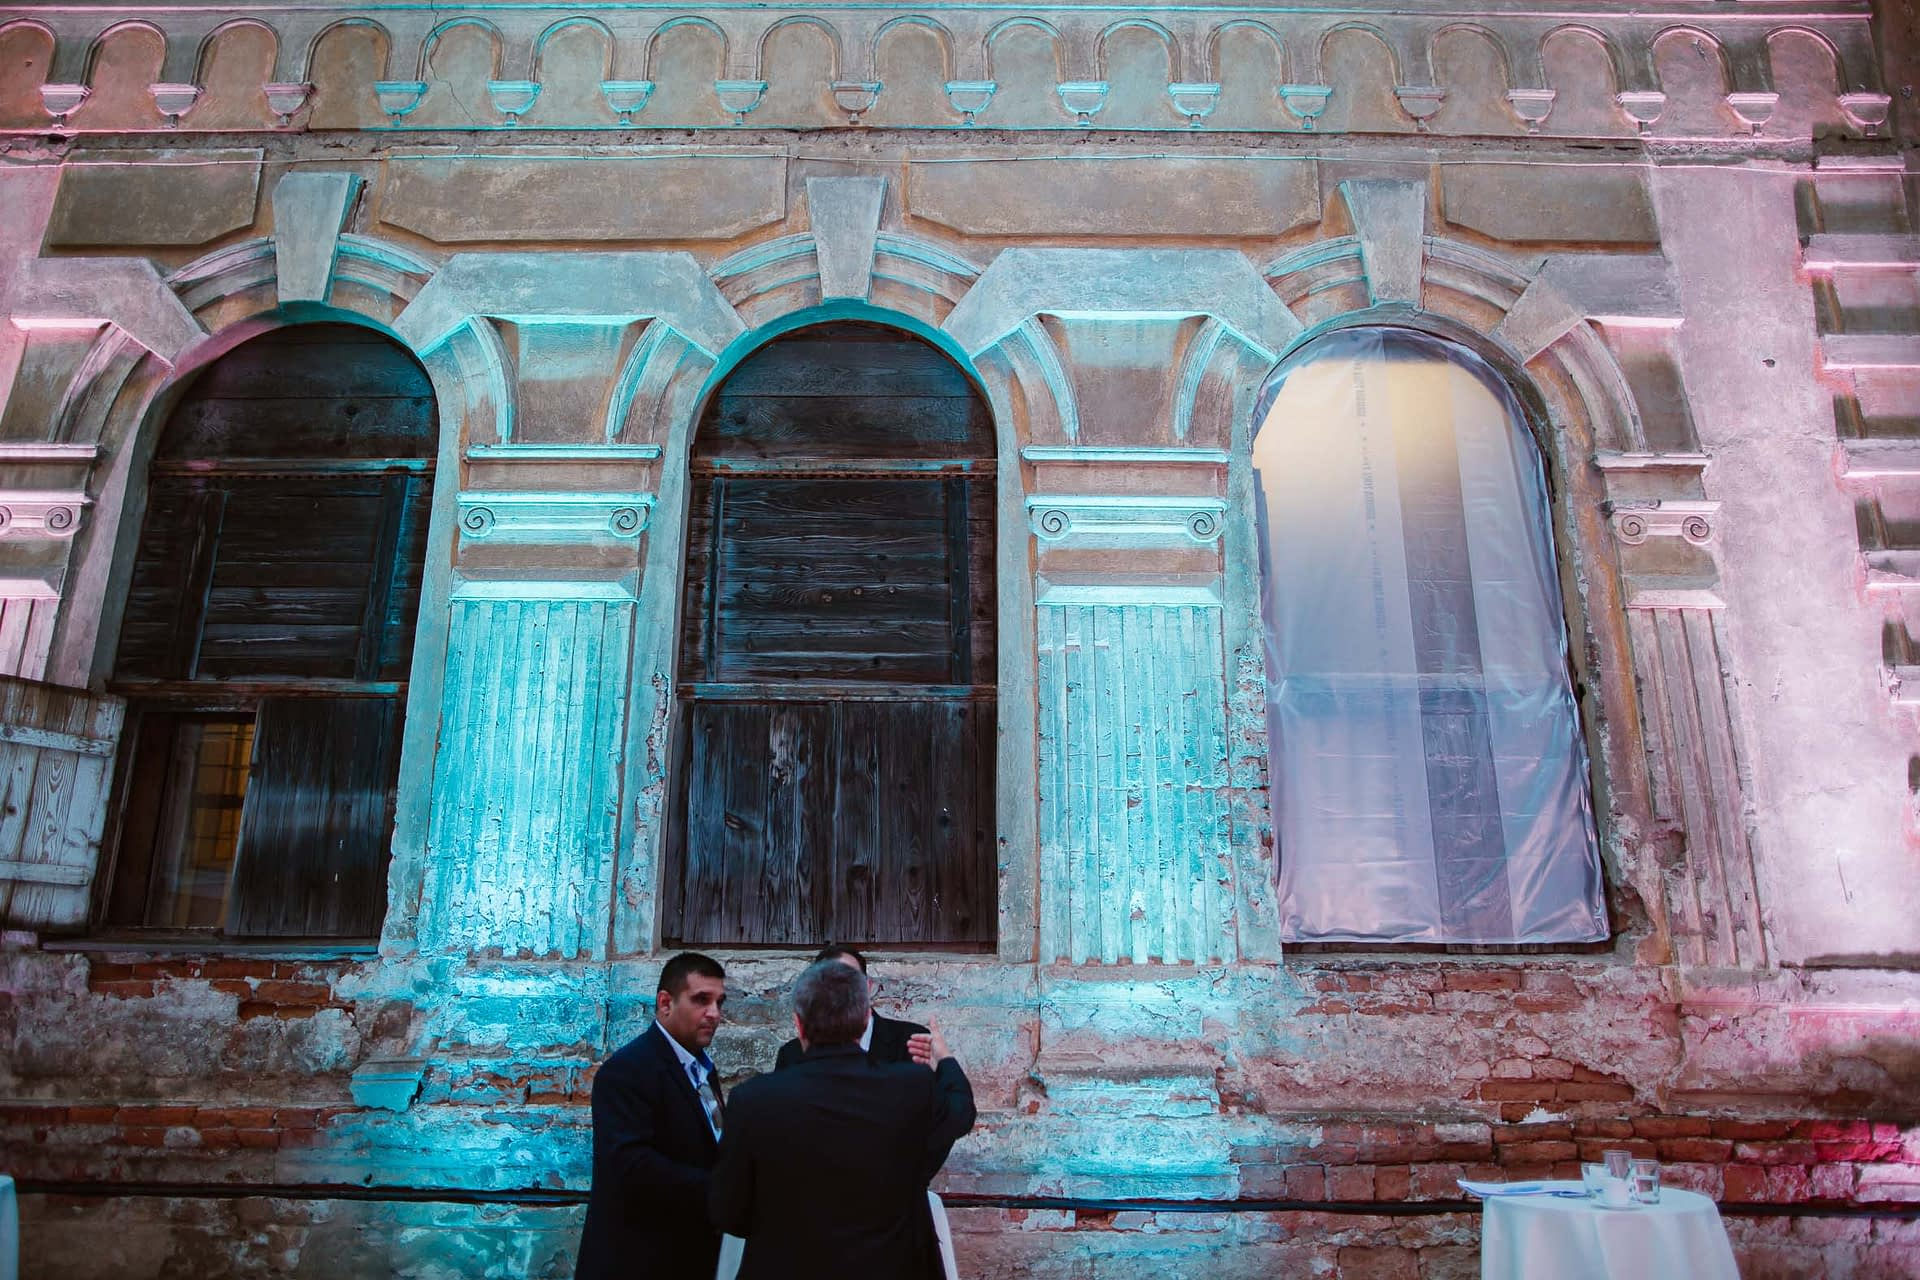 Special lighting on the Old Synagogue